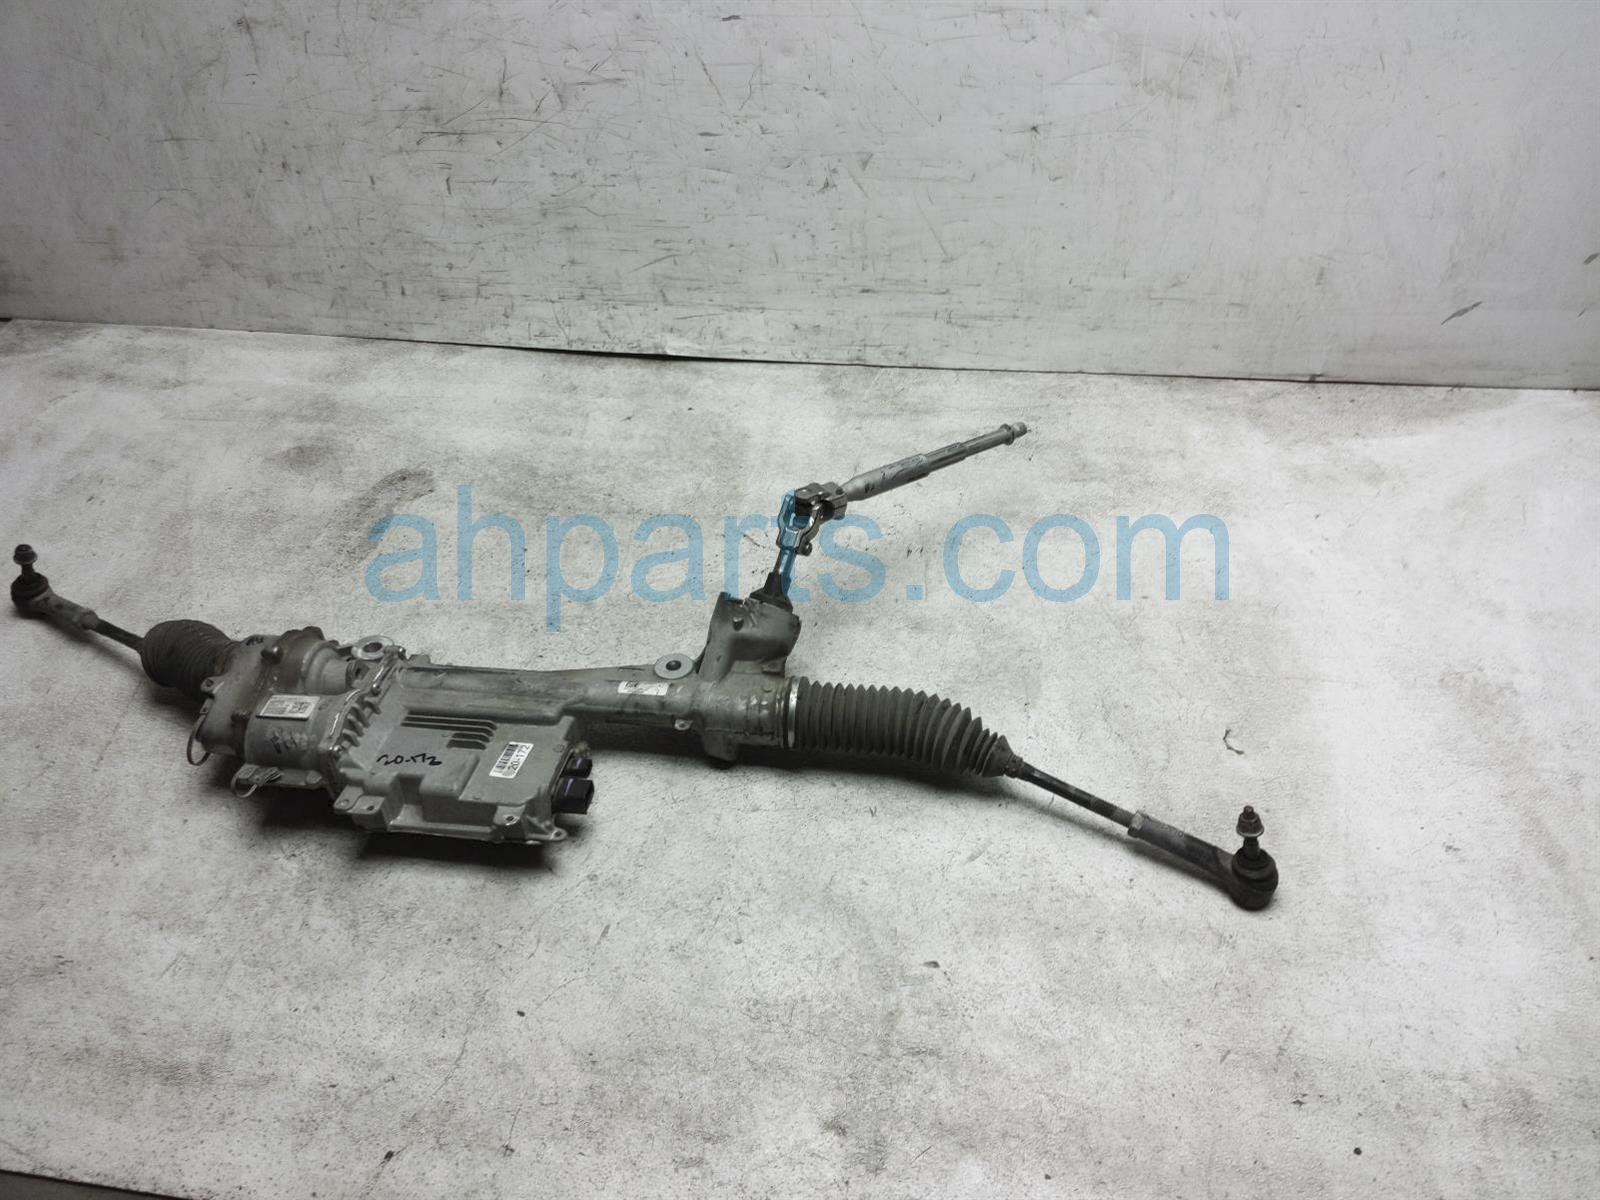 2017 Ford Mustang And / Gear Box Power Steering Rack Pinion GR3Z 3504 D Replacement